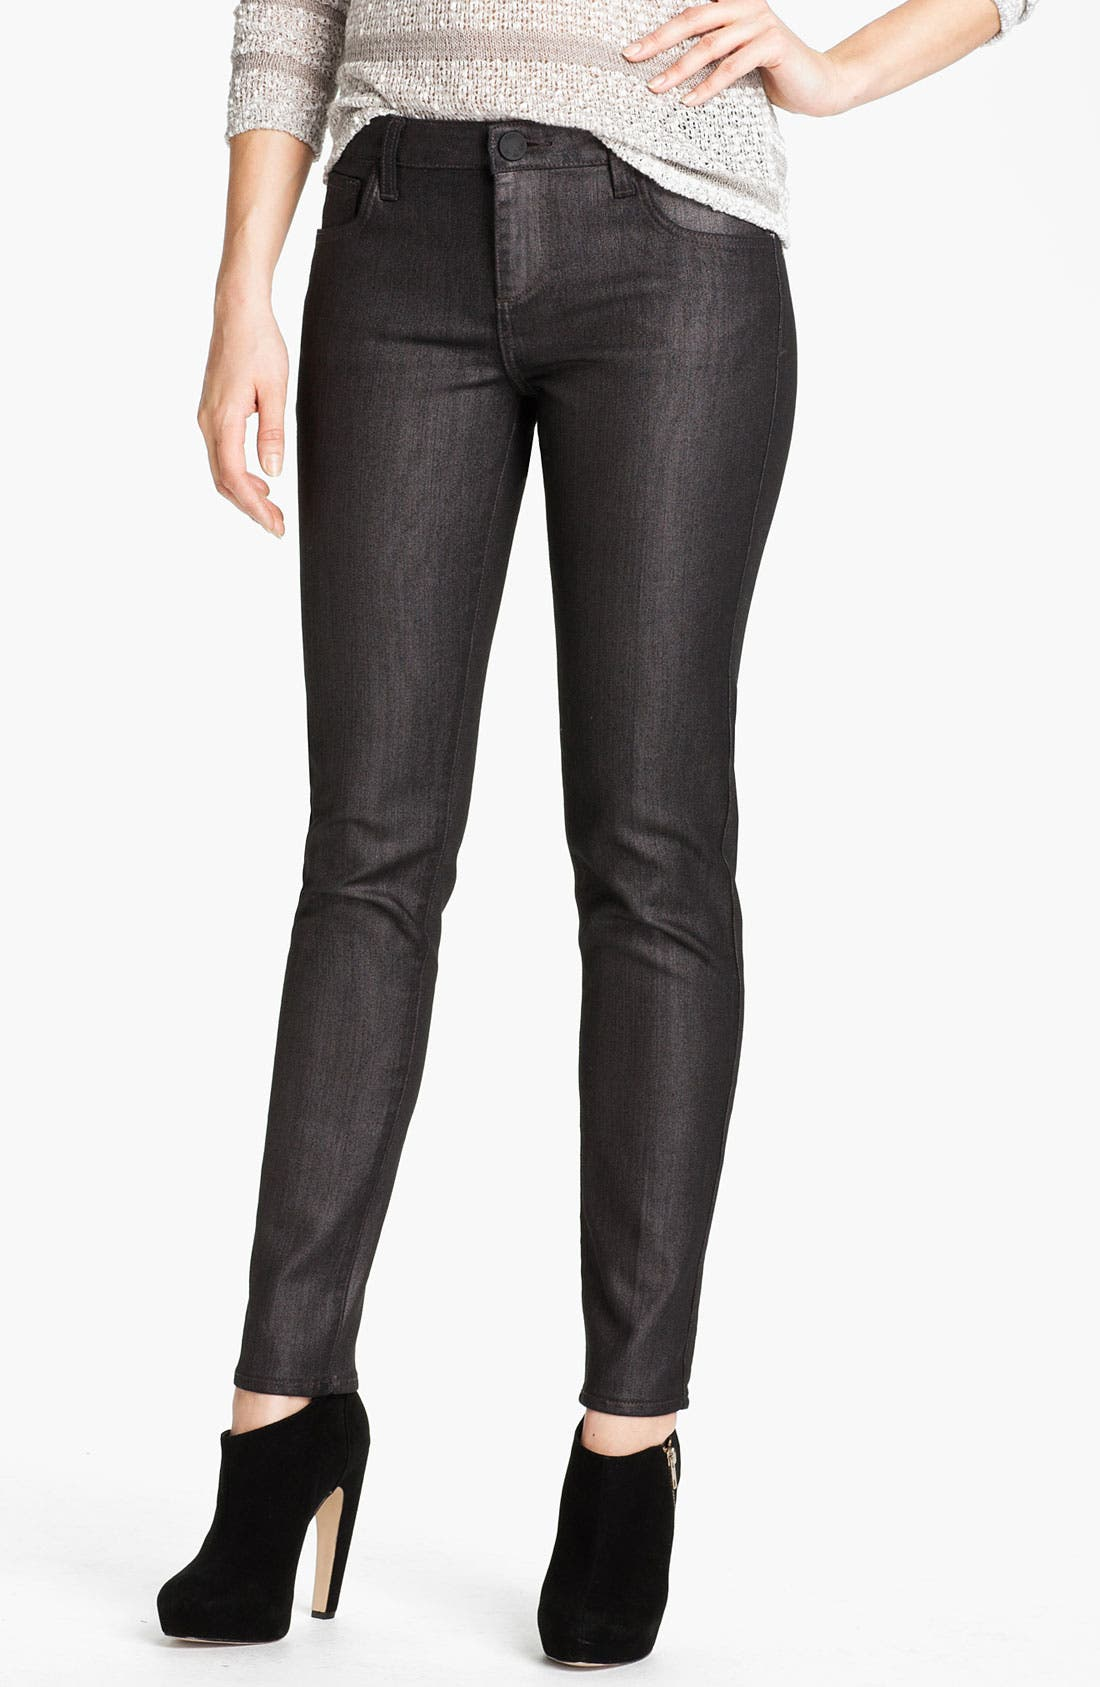 Main Image - KUT from the Kloth 'Jennifer' Skinny Stretch Jeans (Silver) (Online Exclusive)